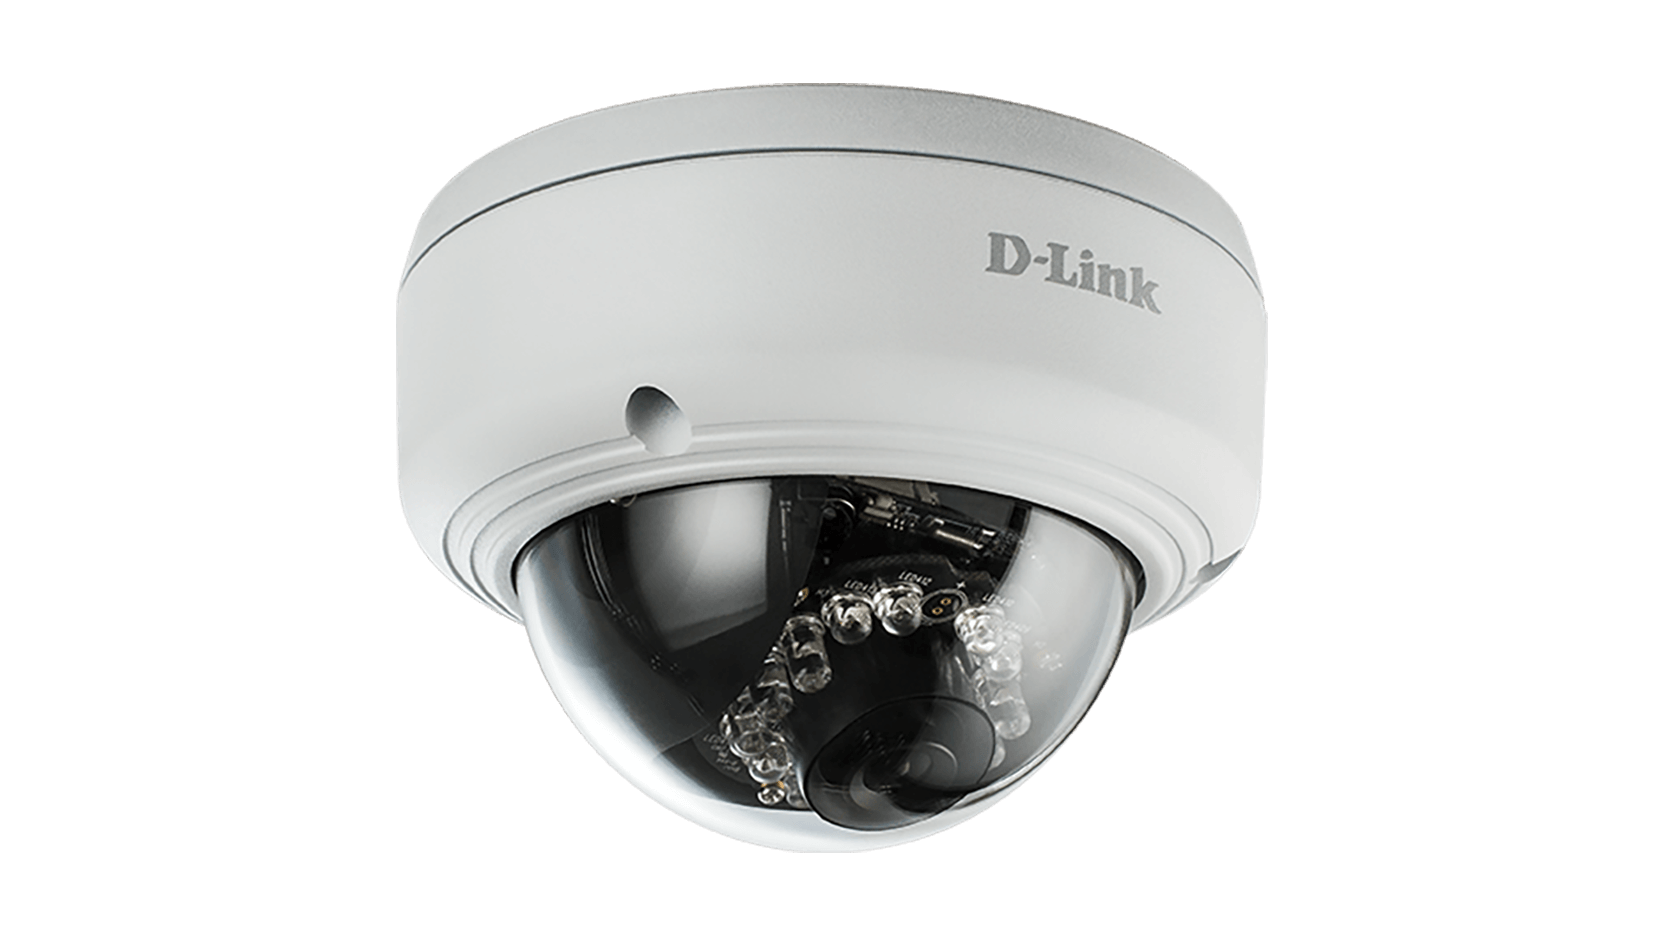 Camera De Surveillance Exterieur Sans Fil D-link D Link Dcs 4602ev Full Hd Outdoor Vandal Proof Poe Dome Camera